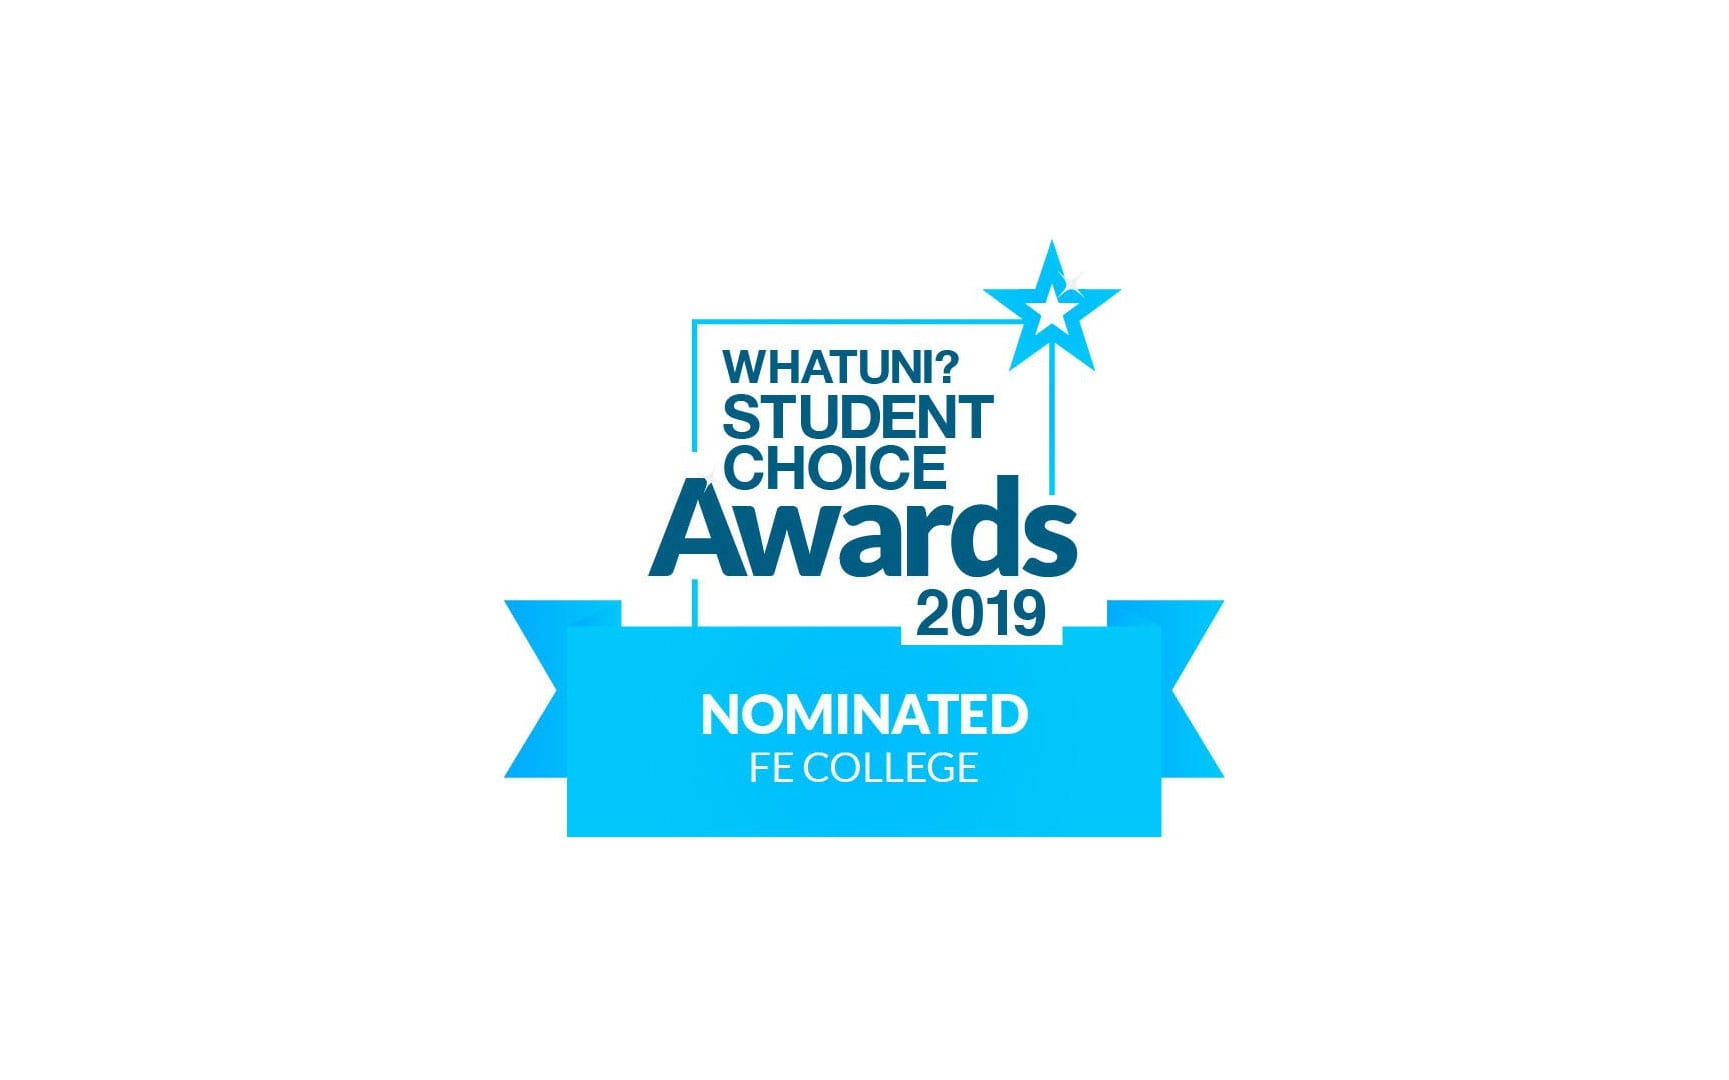 WhatUni Student Choice Awards 2019